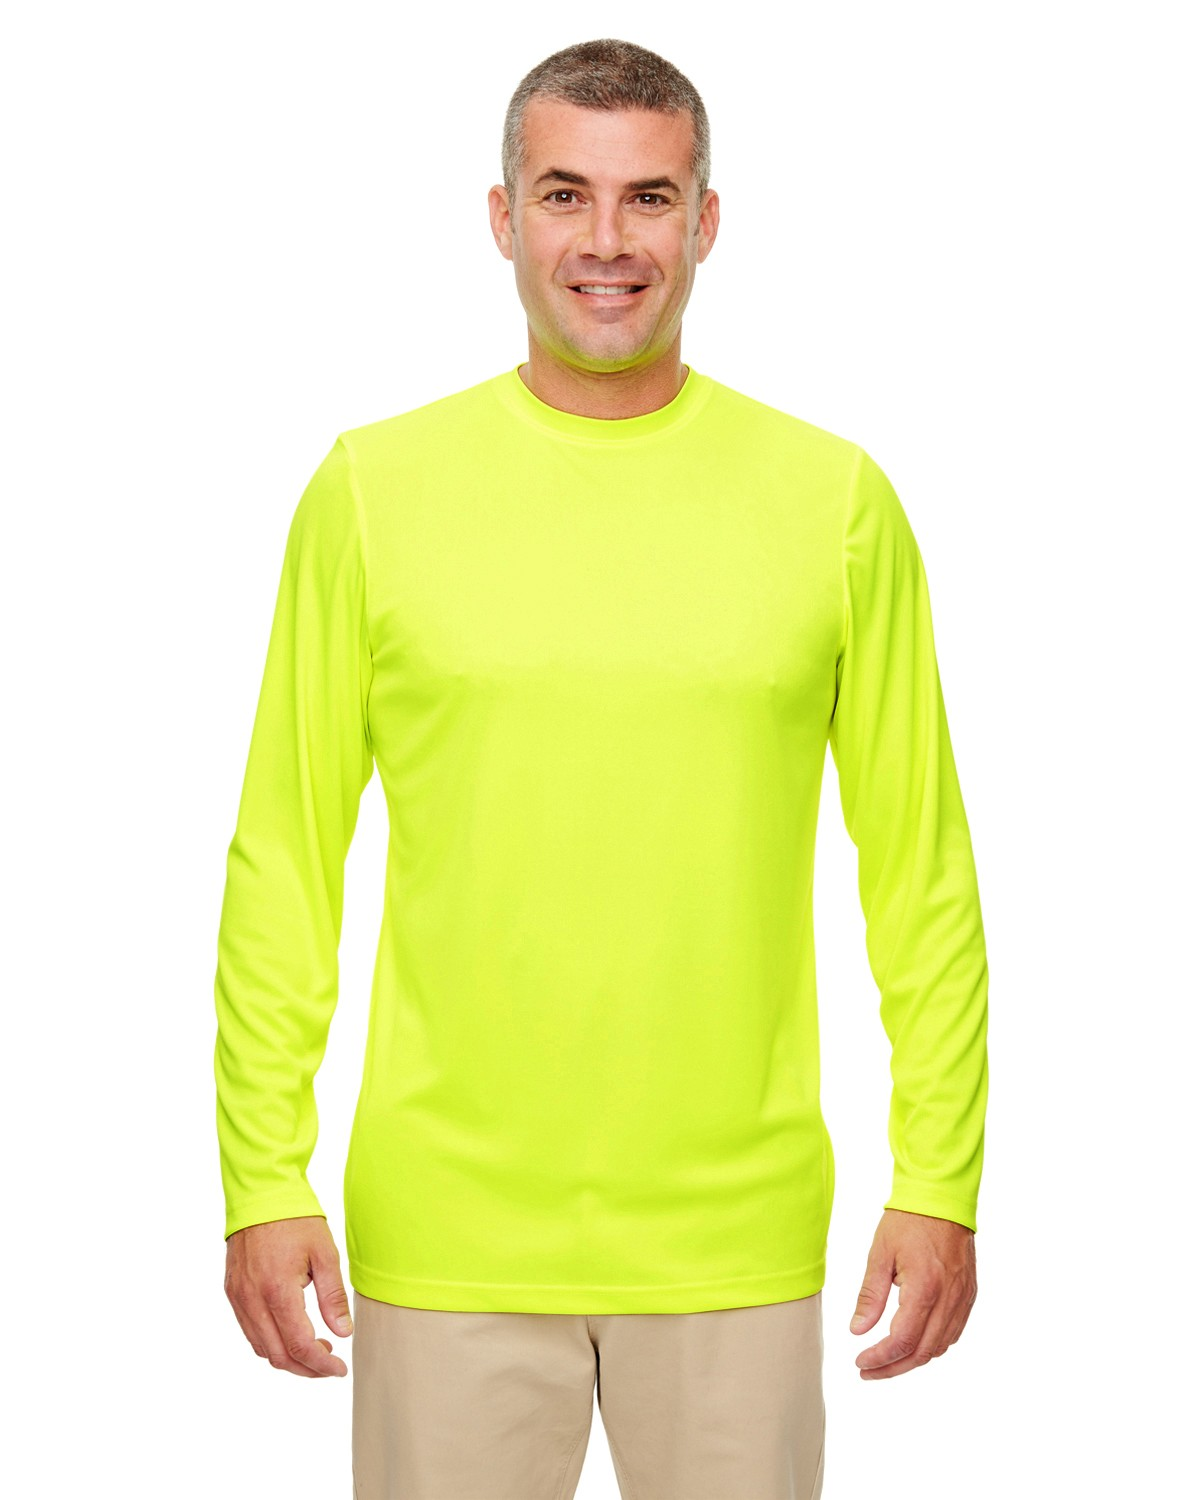 8622 UltraClub BRIGHT YELLOW